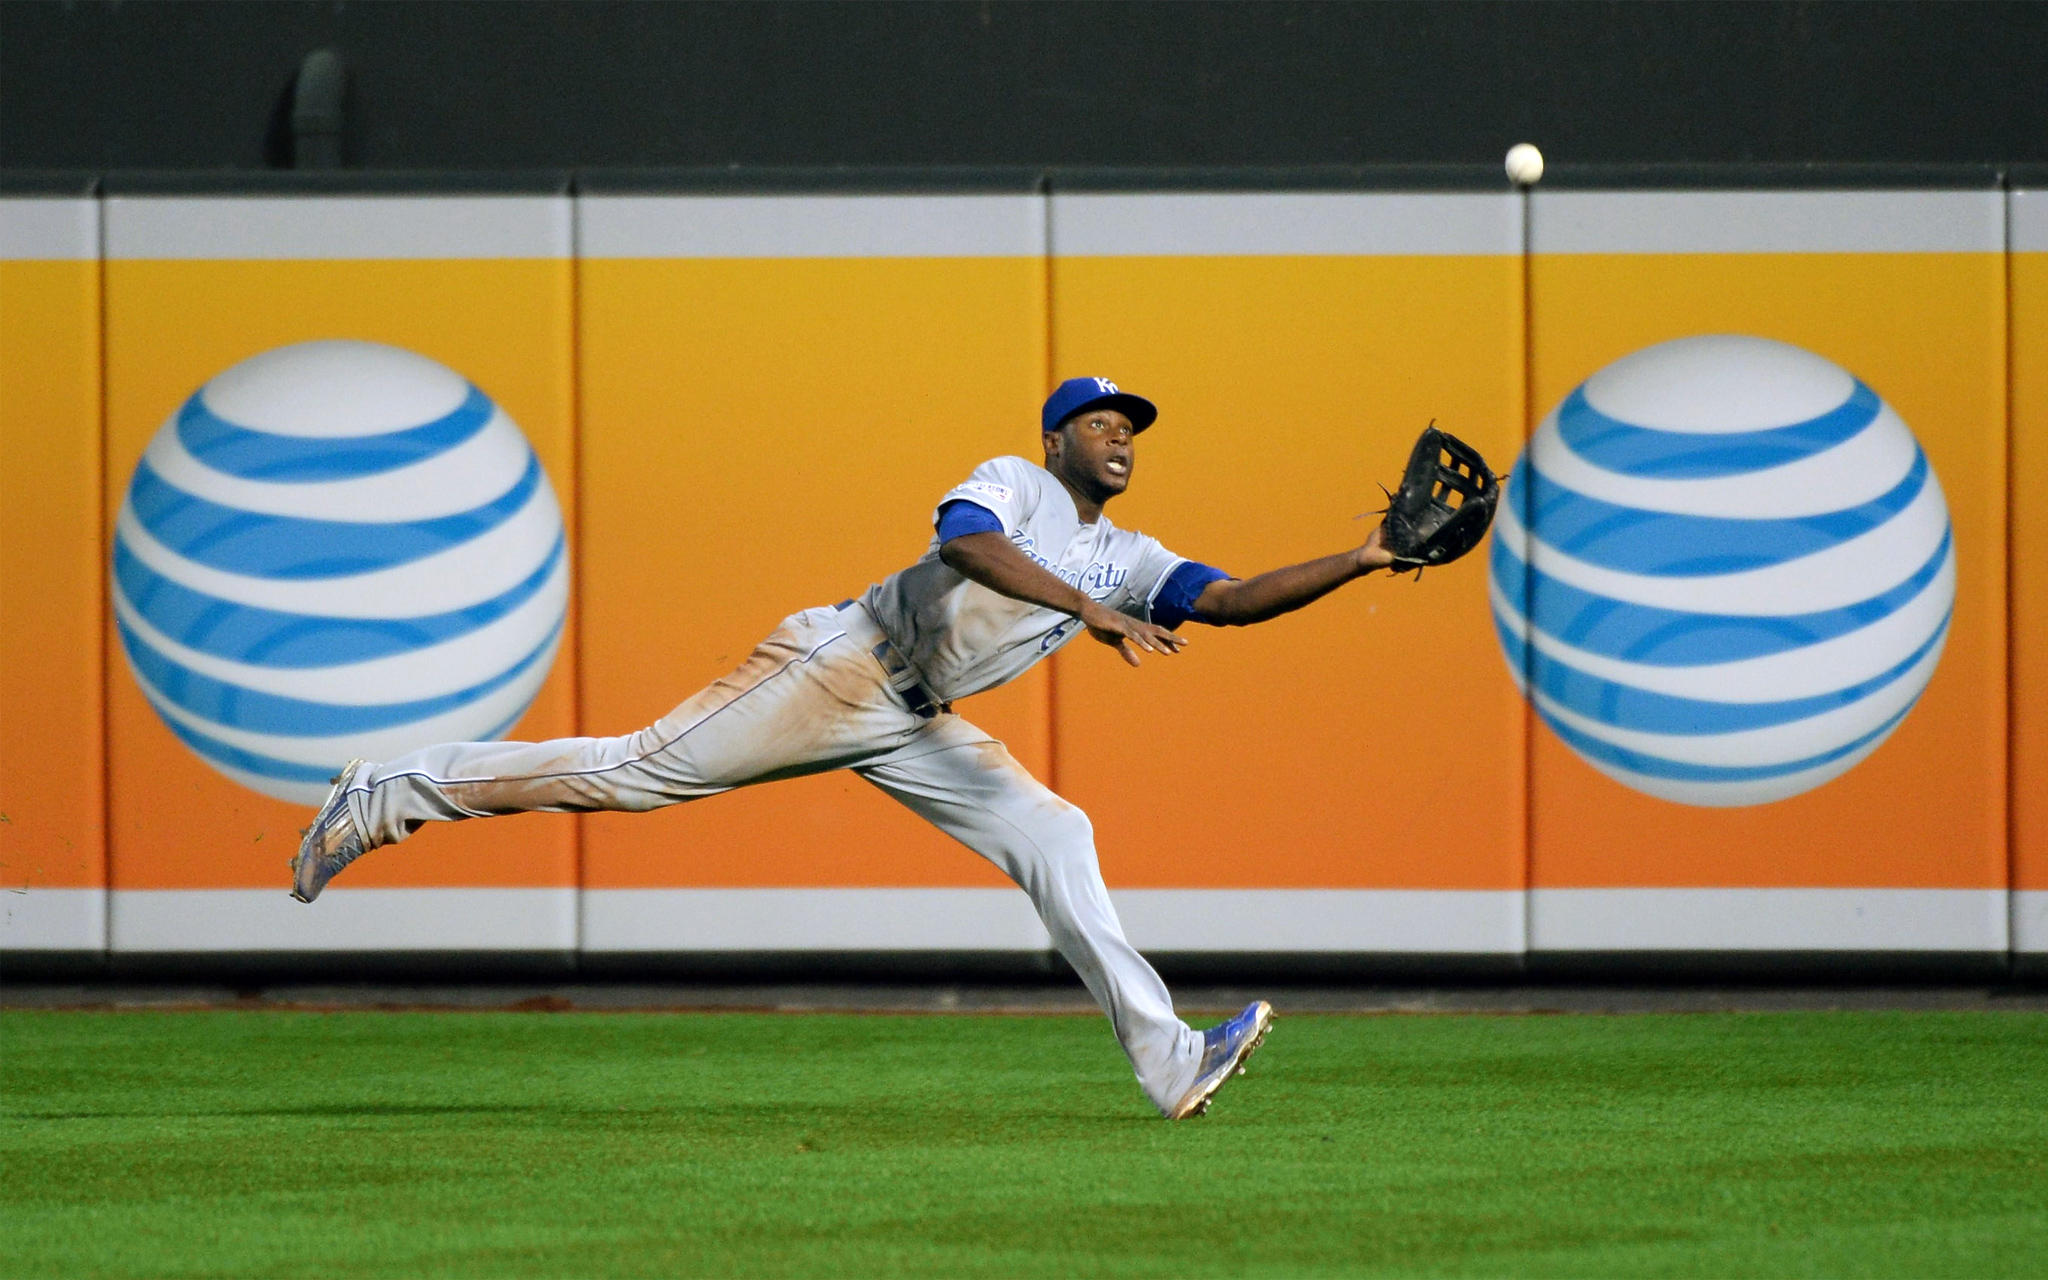 Image result for 2014 alcs game 2 cain catch